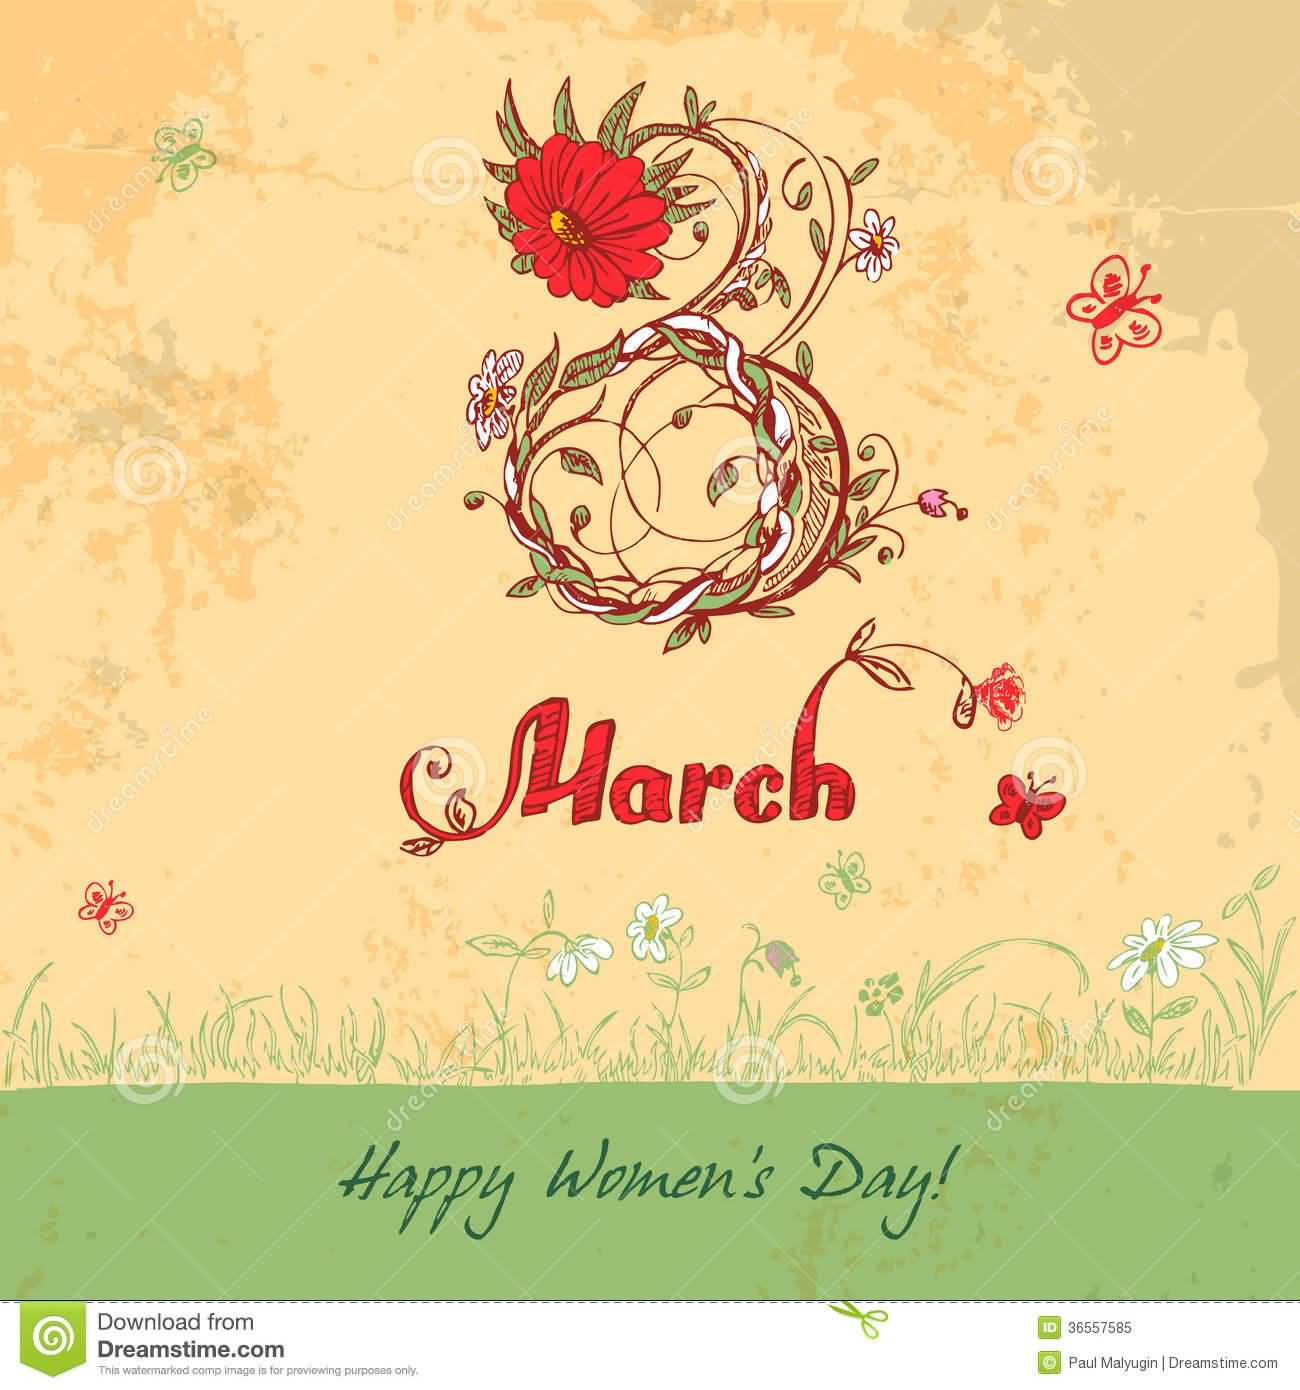 Vintage 8 8 March Happy Women S Day Vintage Greeting Card